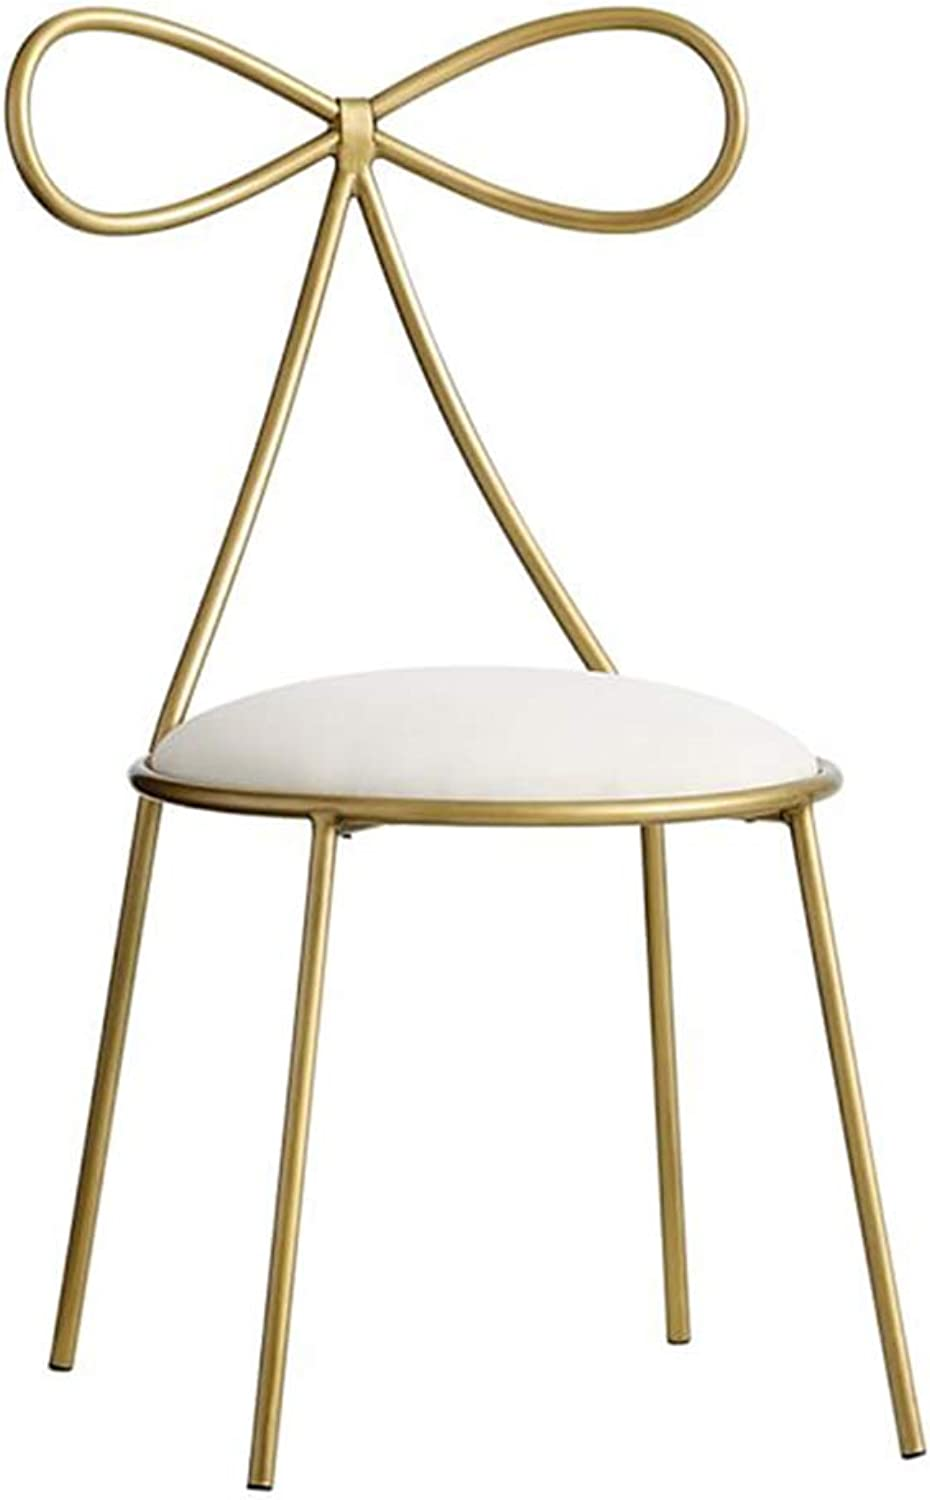 gold Restaurant Chair,Creative Butterfly Tie Chair Restaurant Cafe Decoration Chair Girl Bedroom Makeup Chair Nail Chair 40  40  80CM,gold